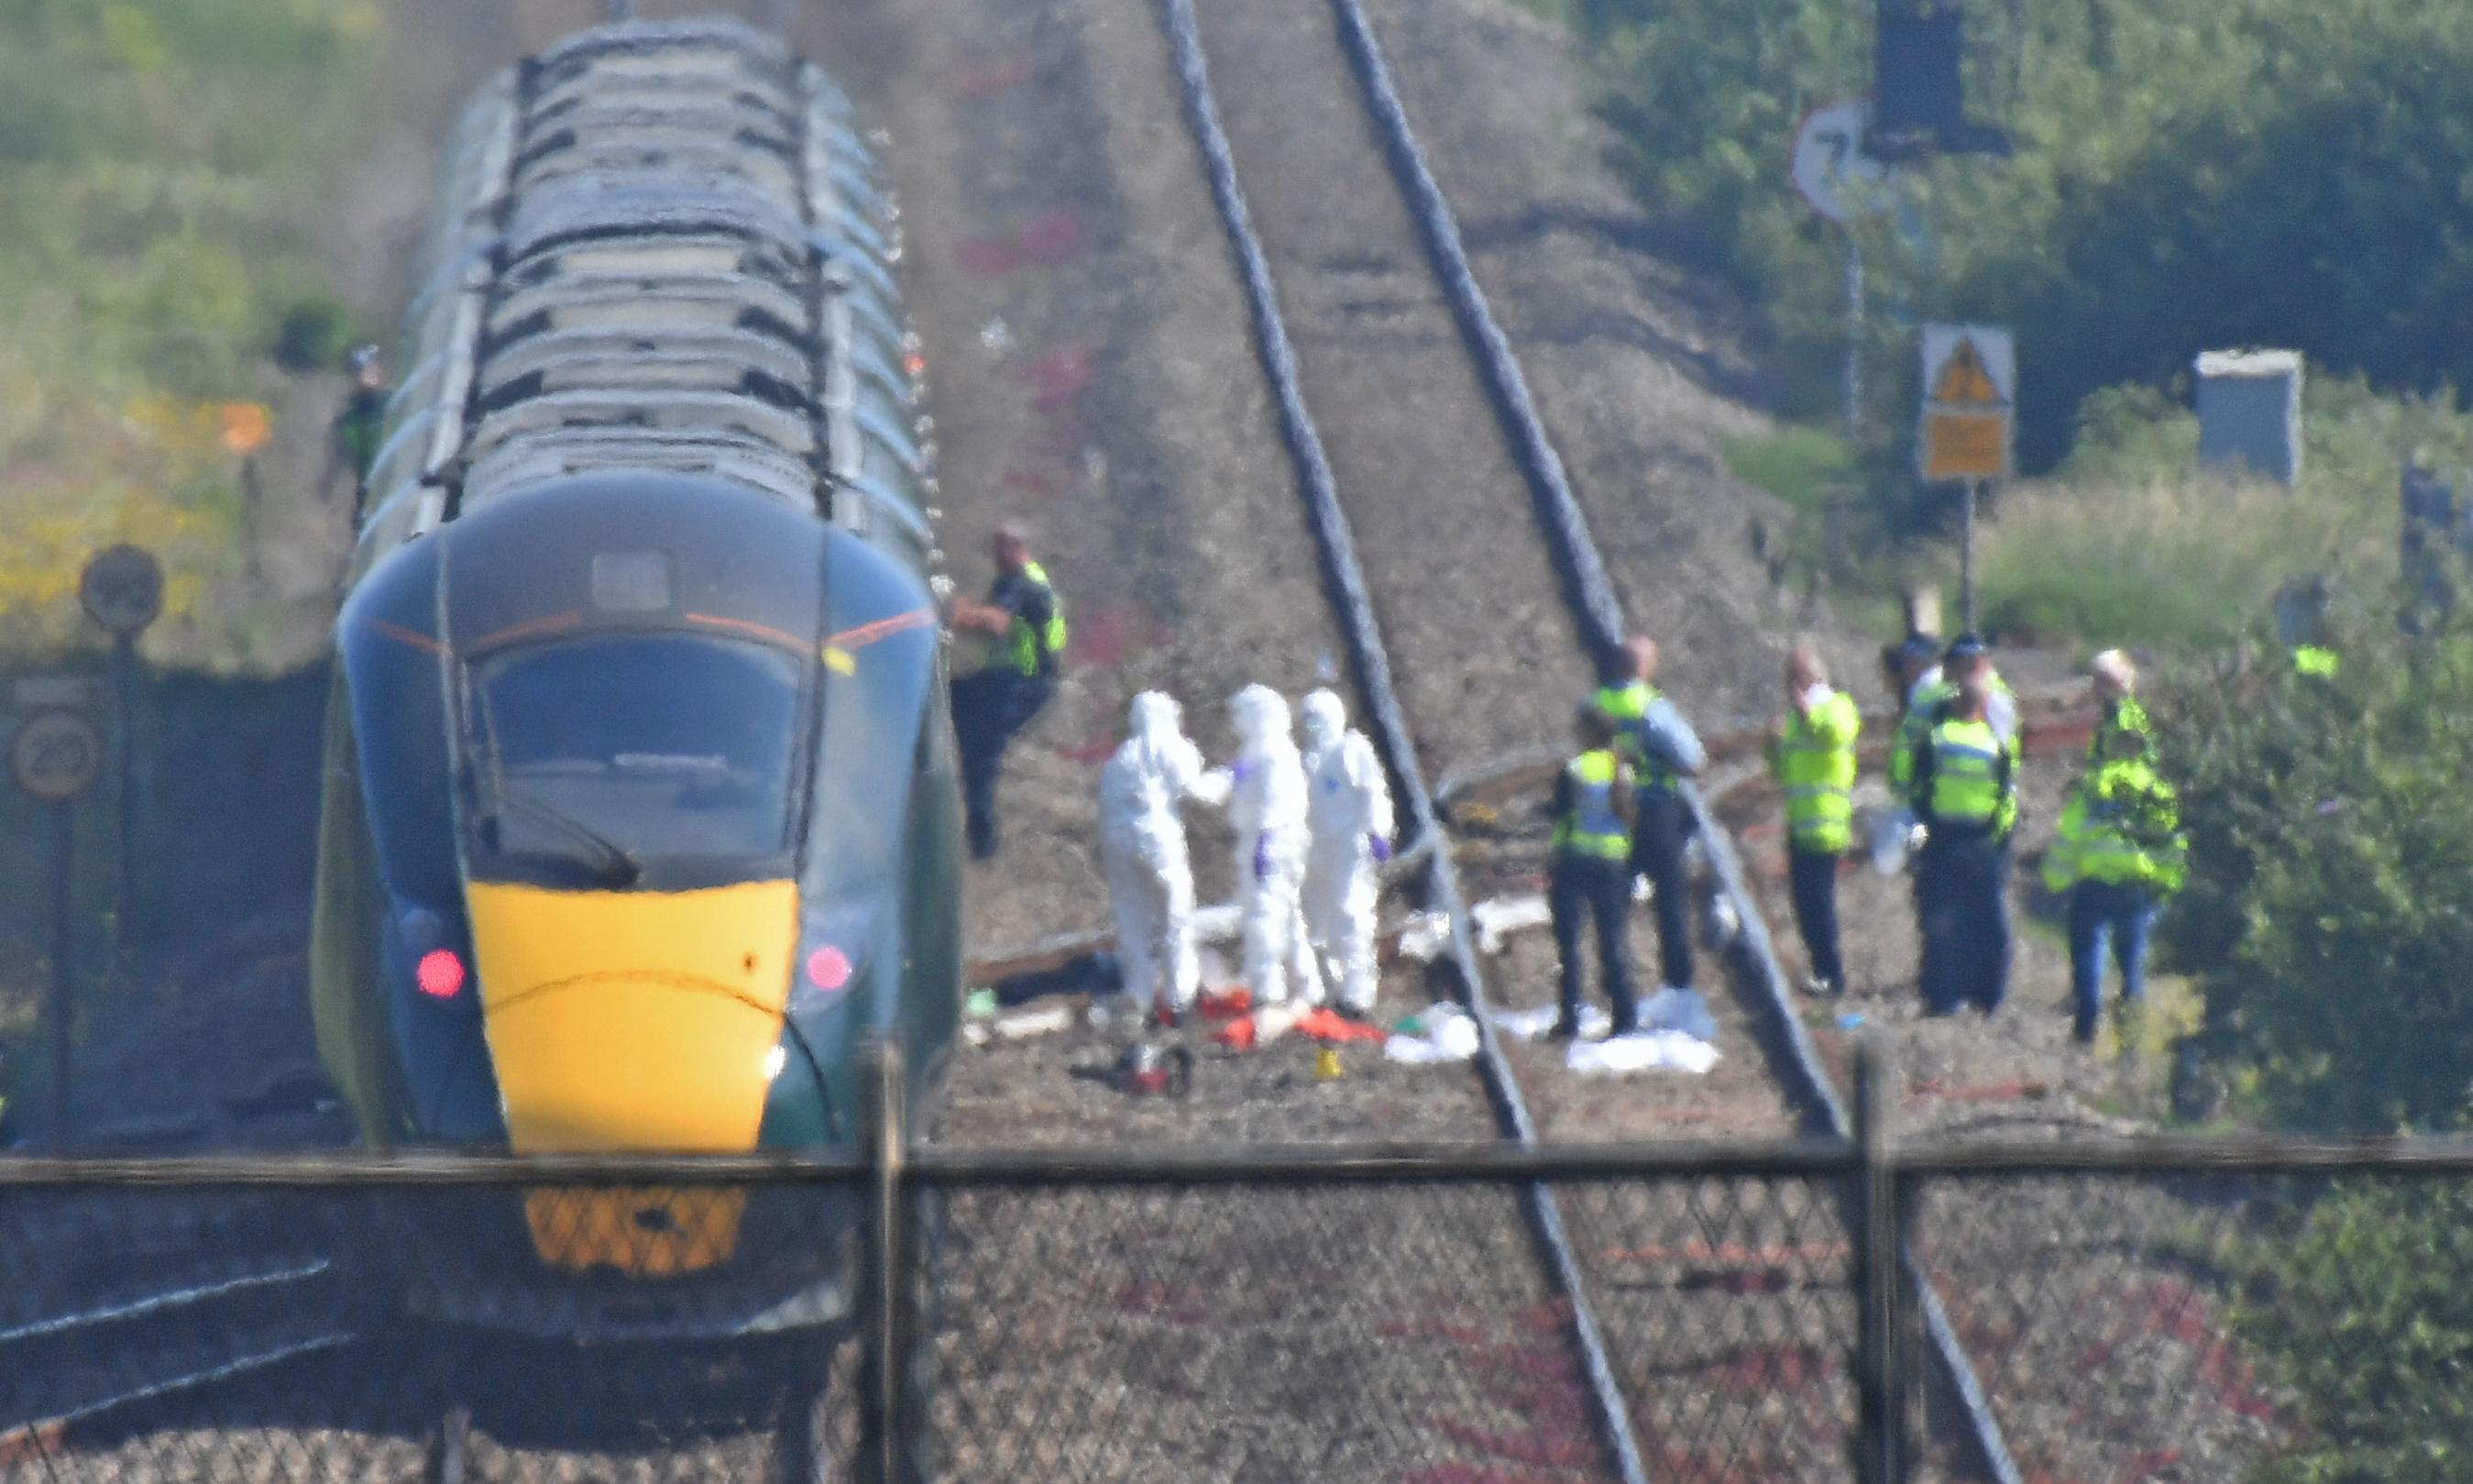 No lookouts when train hit track workers in Wales, says RAIB report